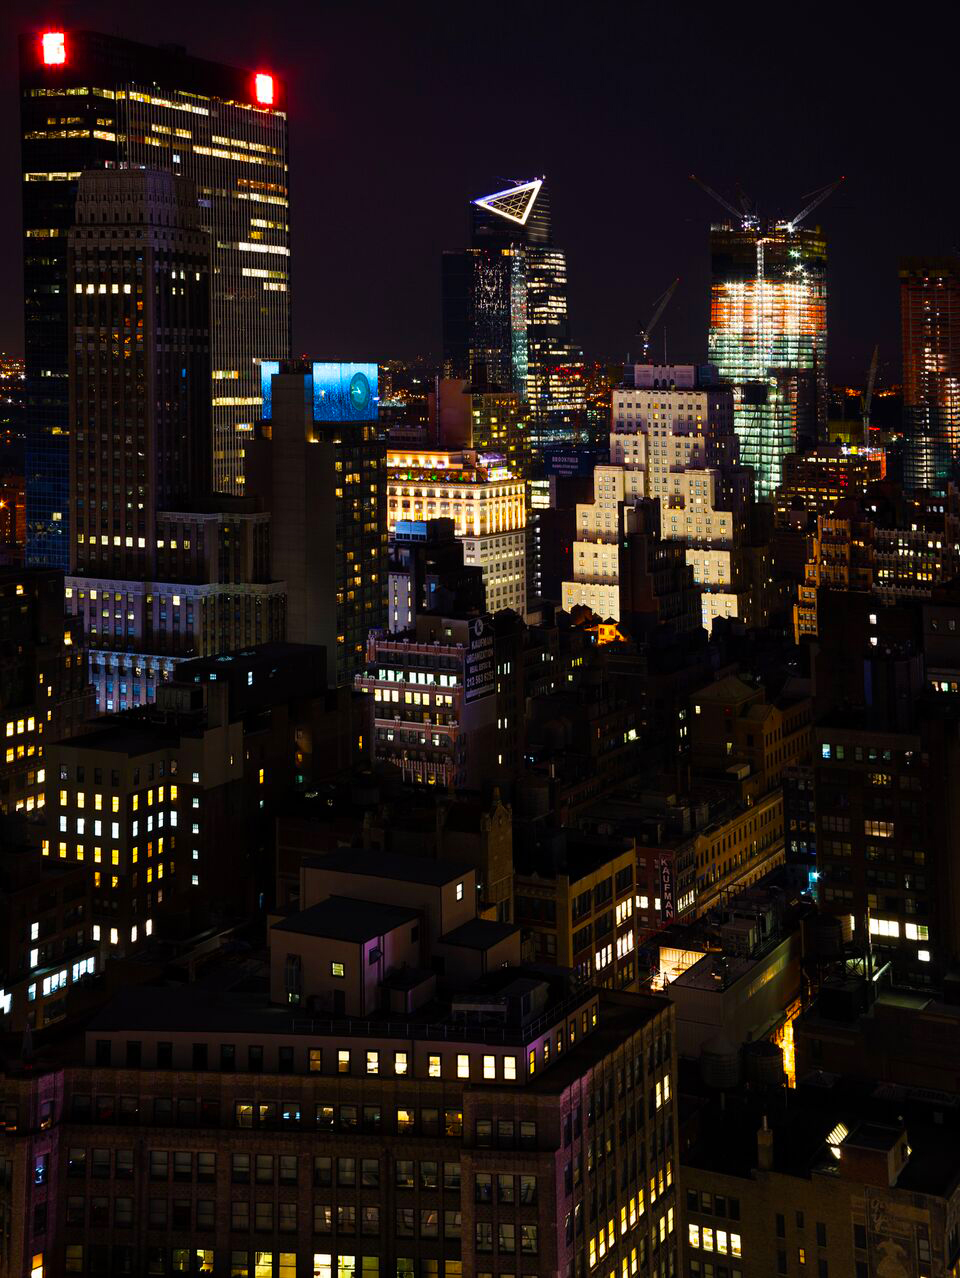 nyc-architecture-photography-katrina-eugenia-photography-skyscrapers-new-york-city-at-night-architectural-photography48.jpg